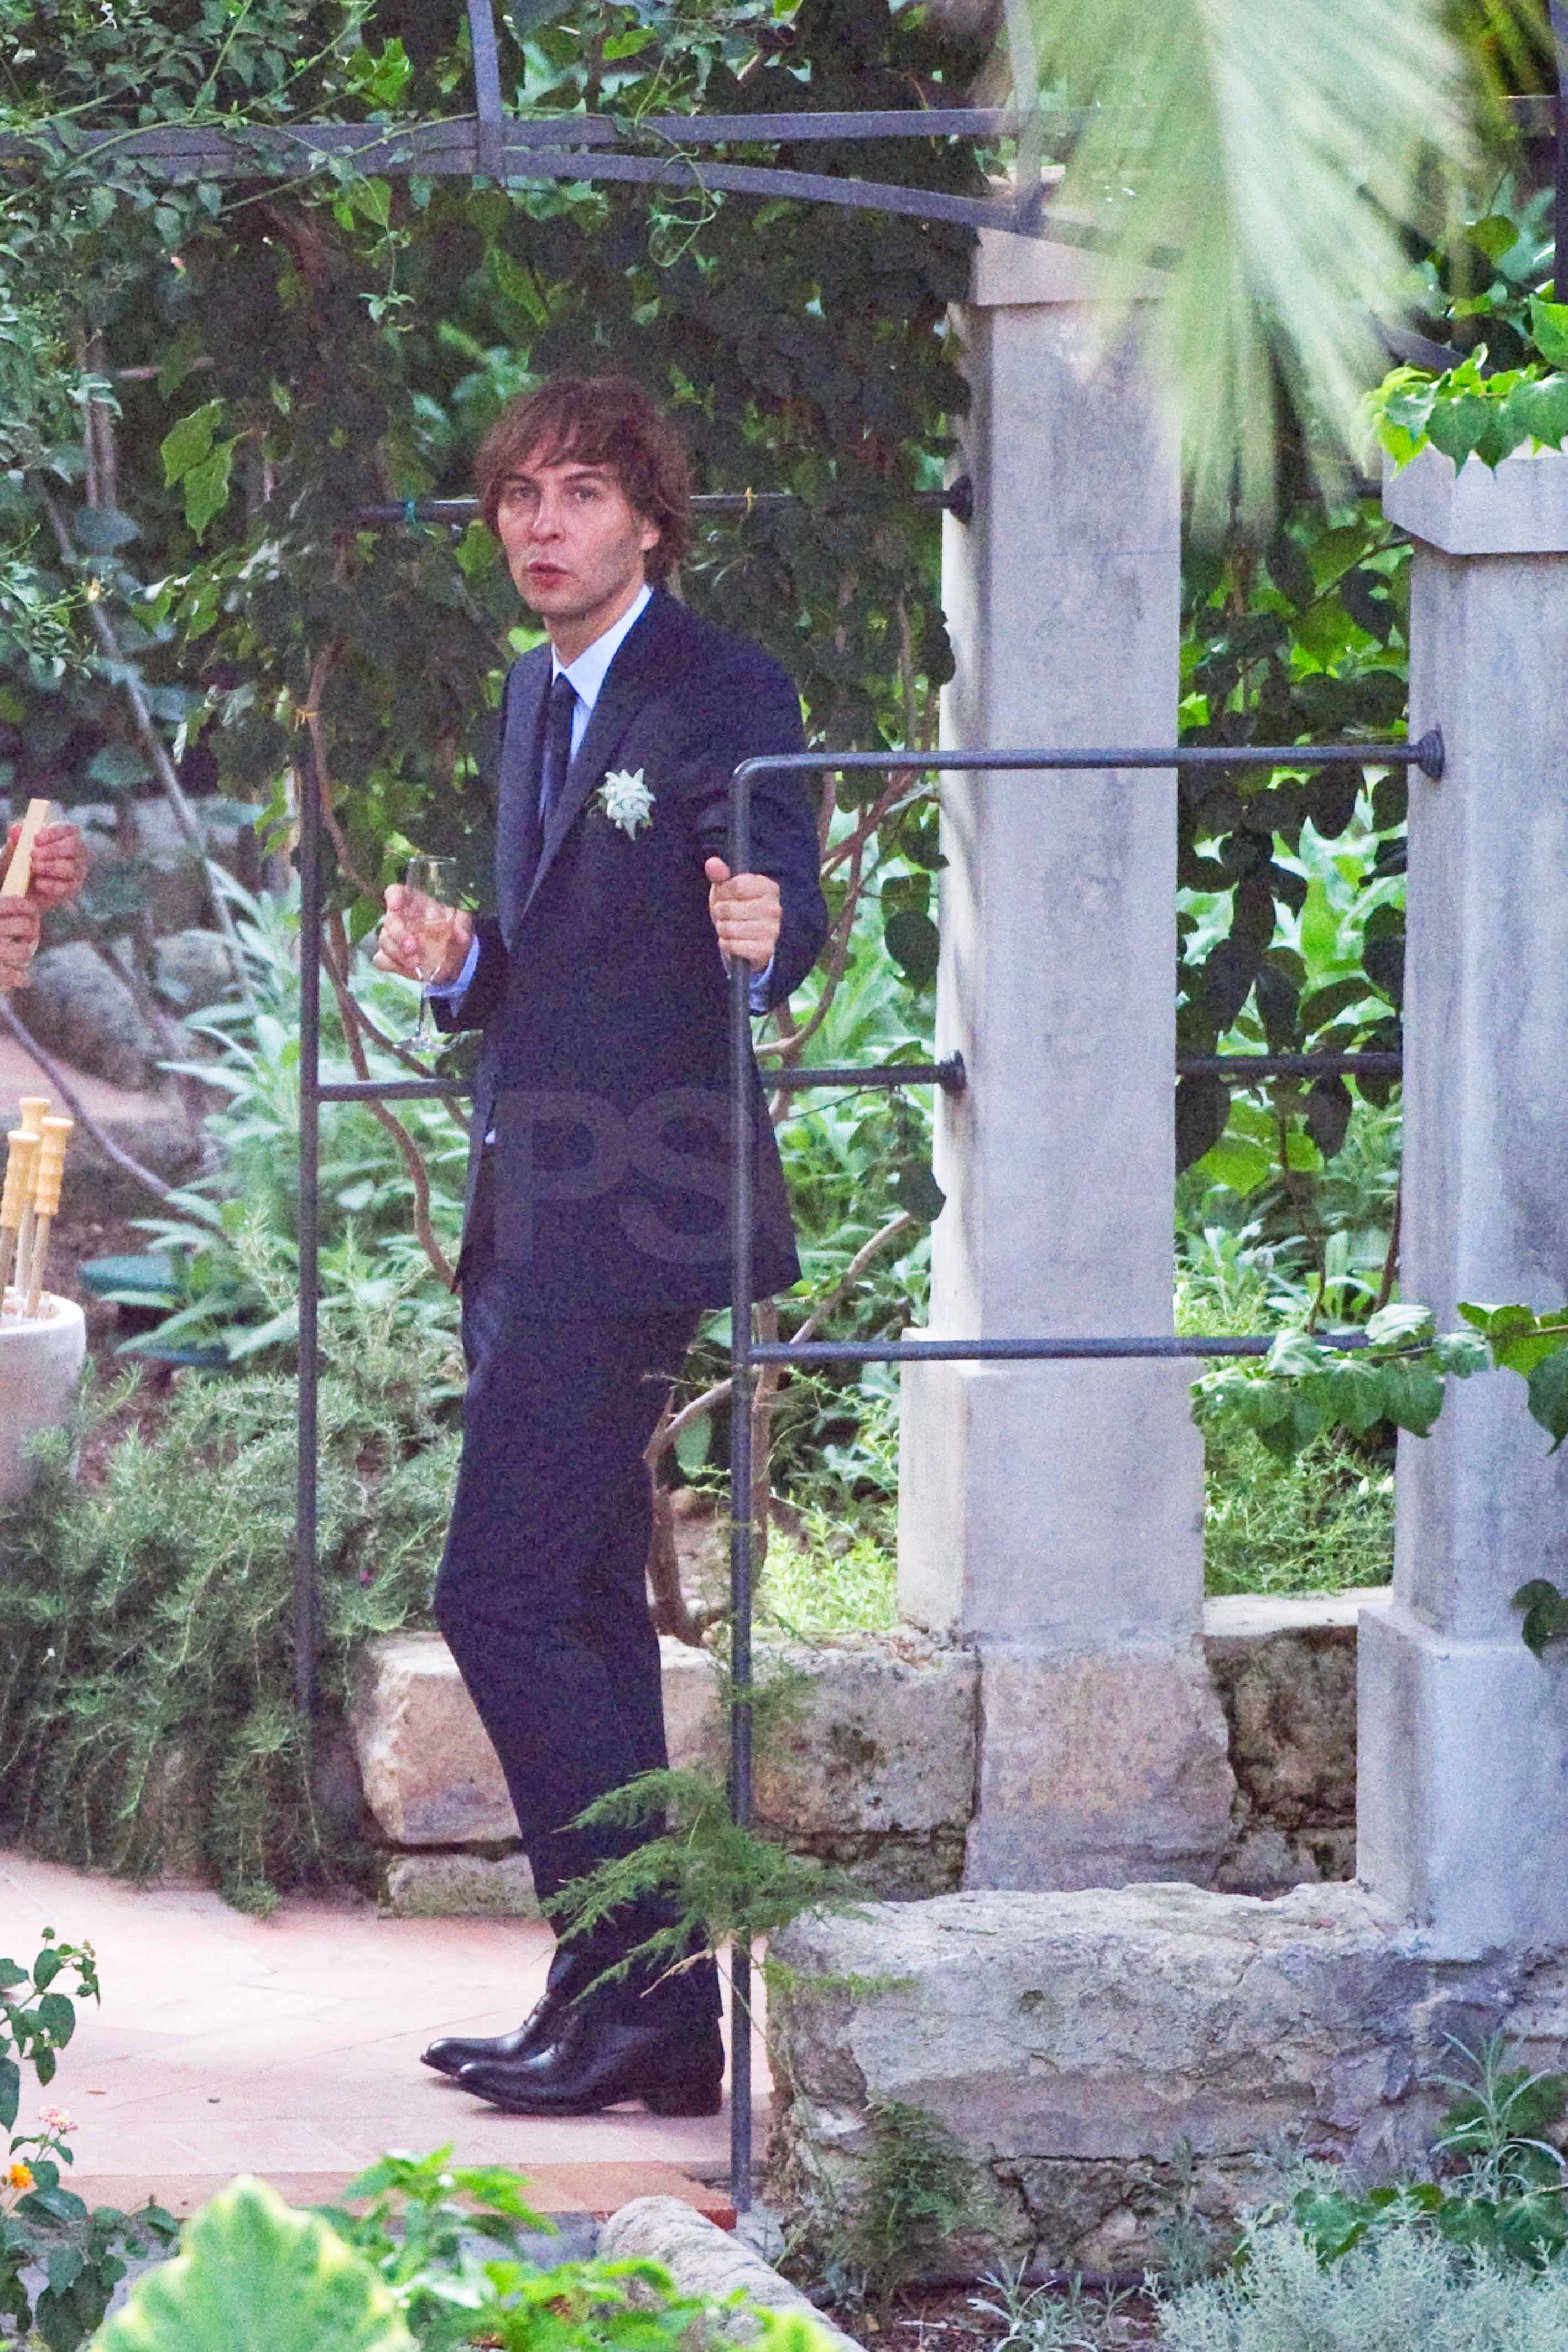 Thomas Mars chatted with friends at the reception.